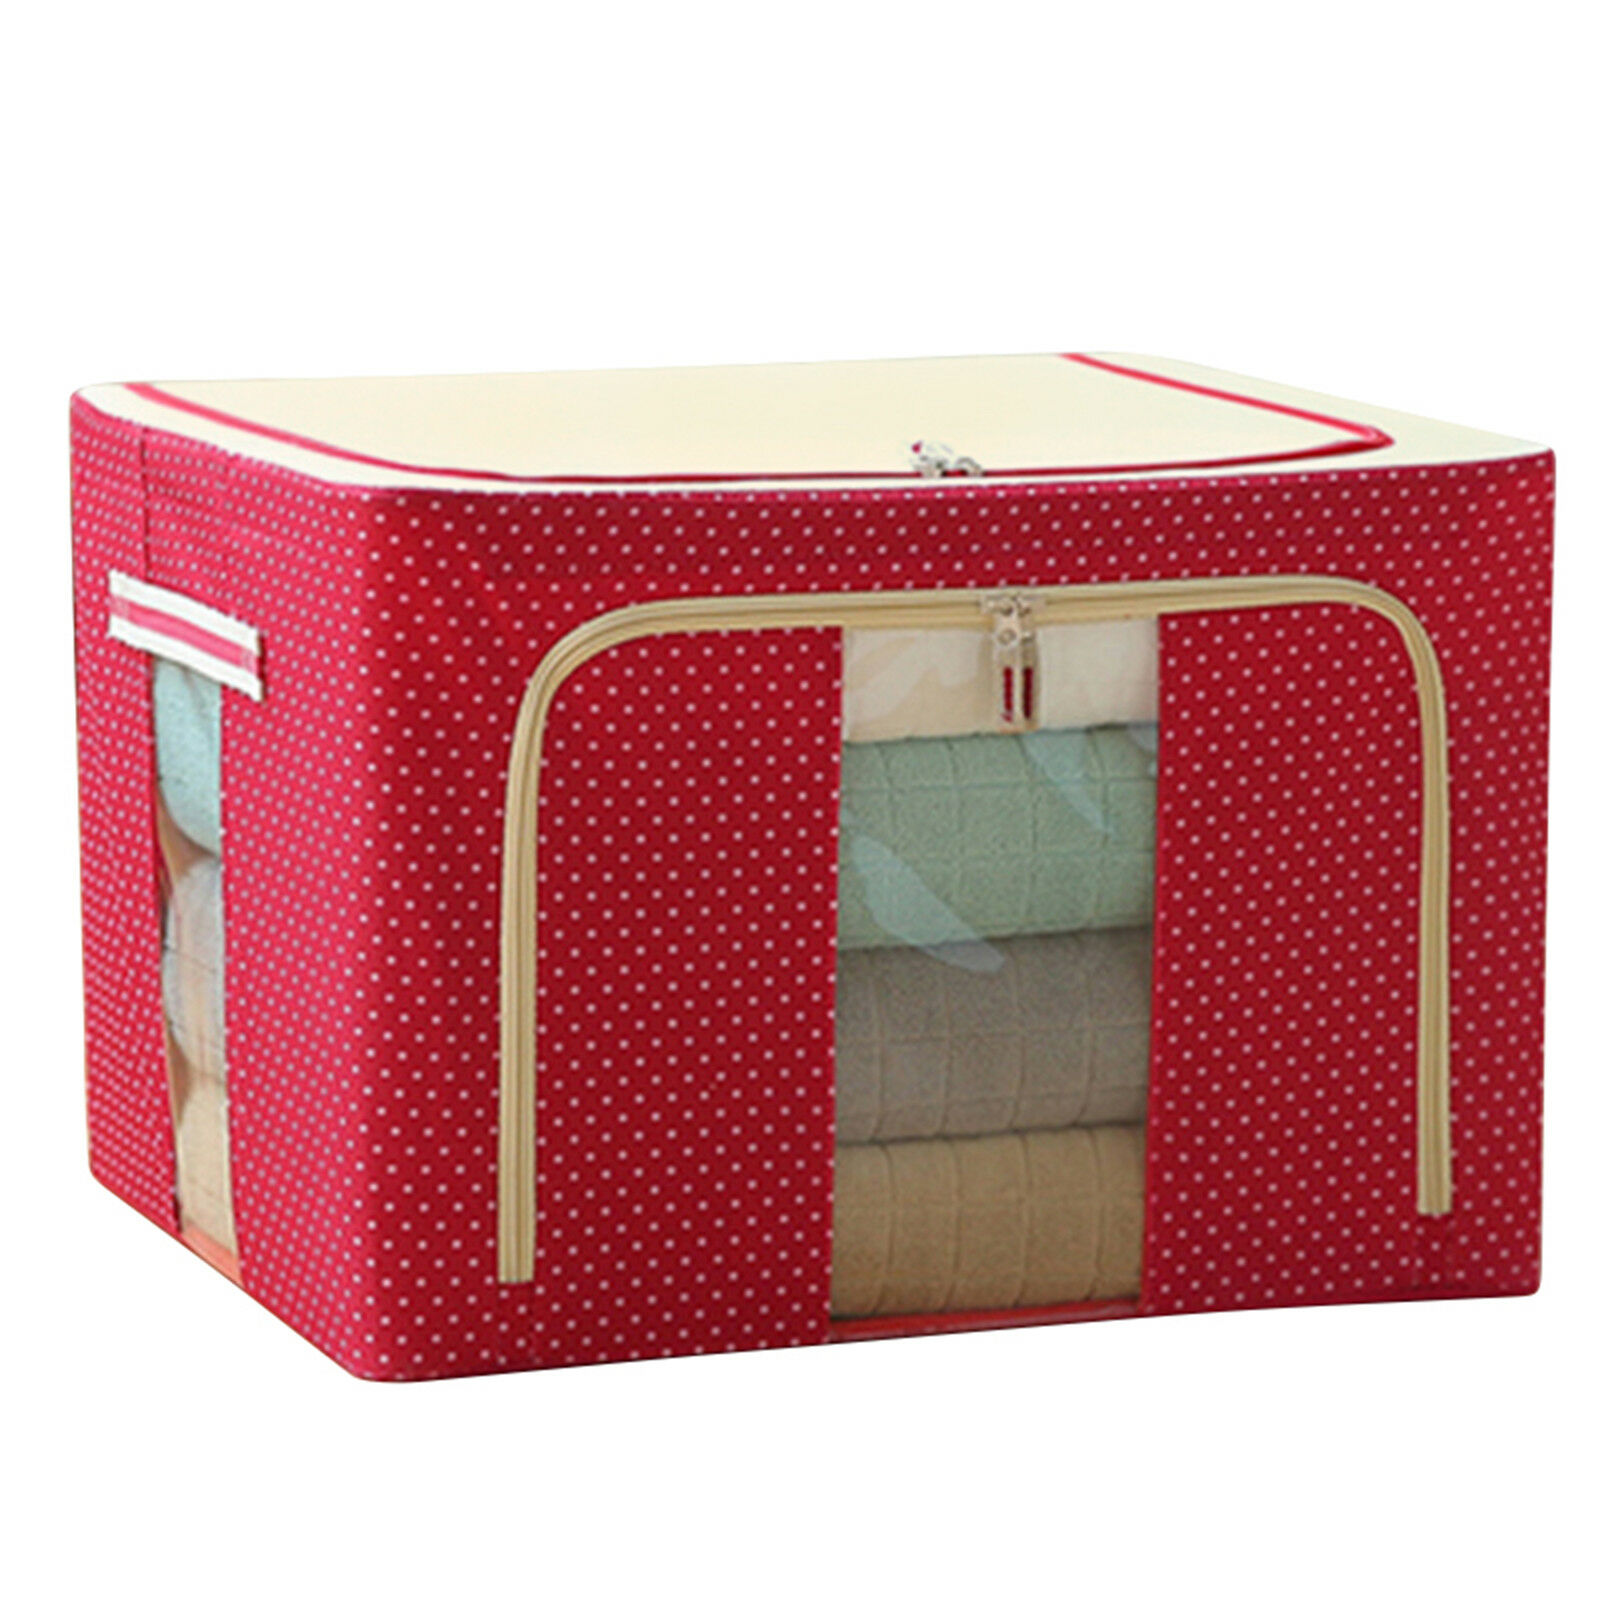 160L Large Foldable folding Storage Organizer Box Collapsible Cube Oxford Fabric